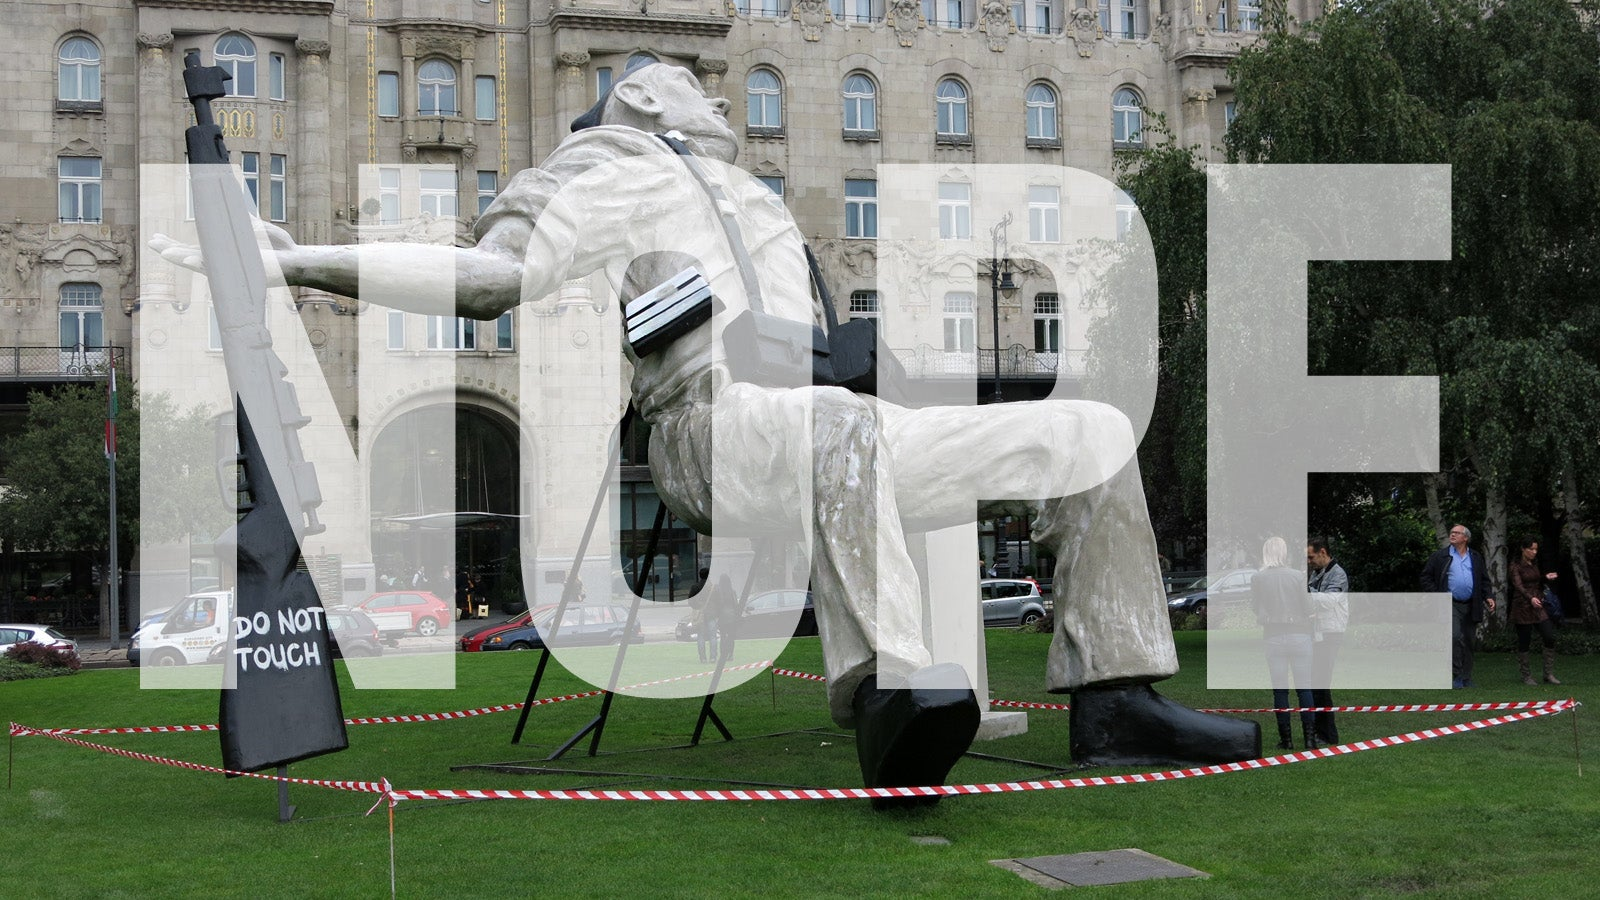 To Whom It May Concern: Why Did You Put This Ugly Piece Of Art In The Middle Of Budapest?